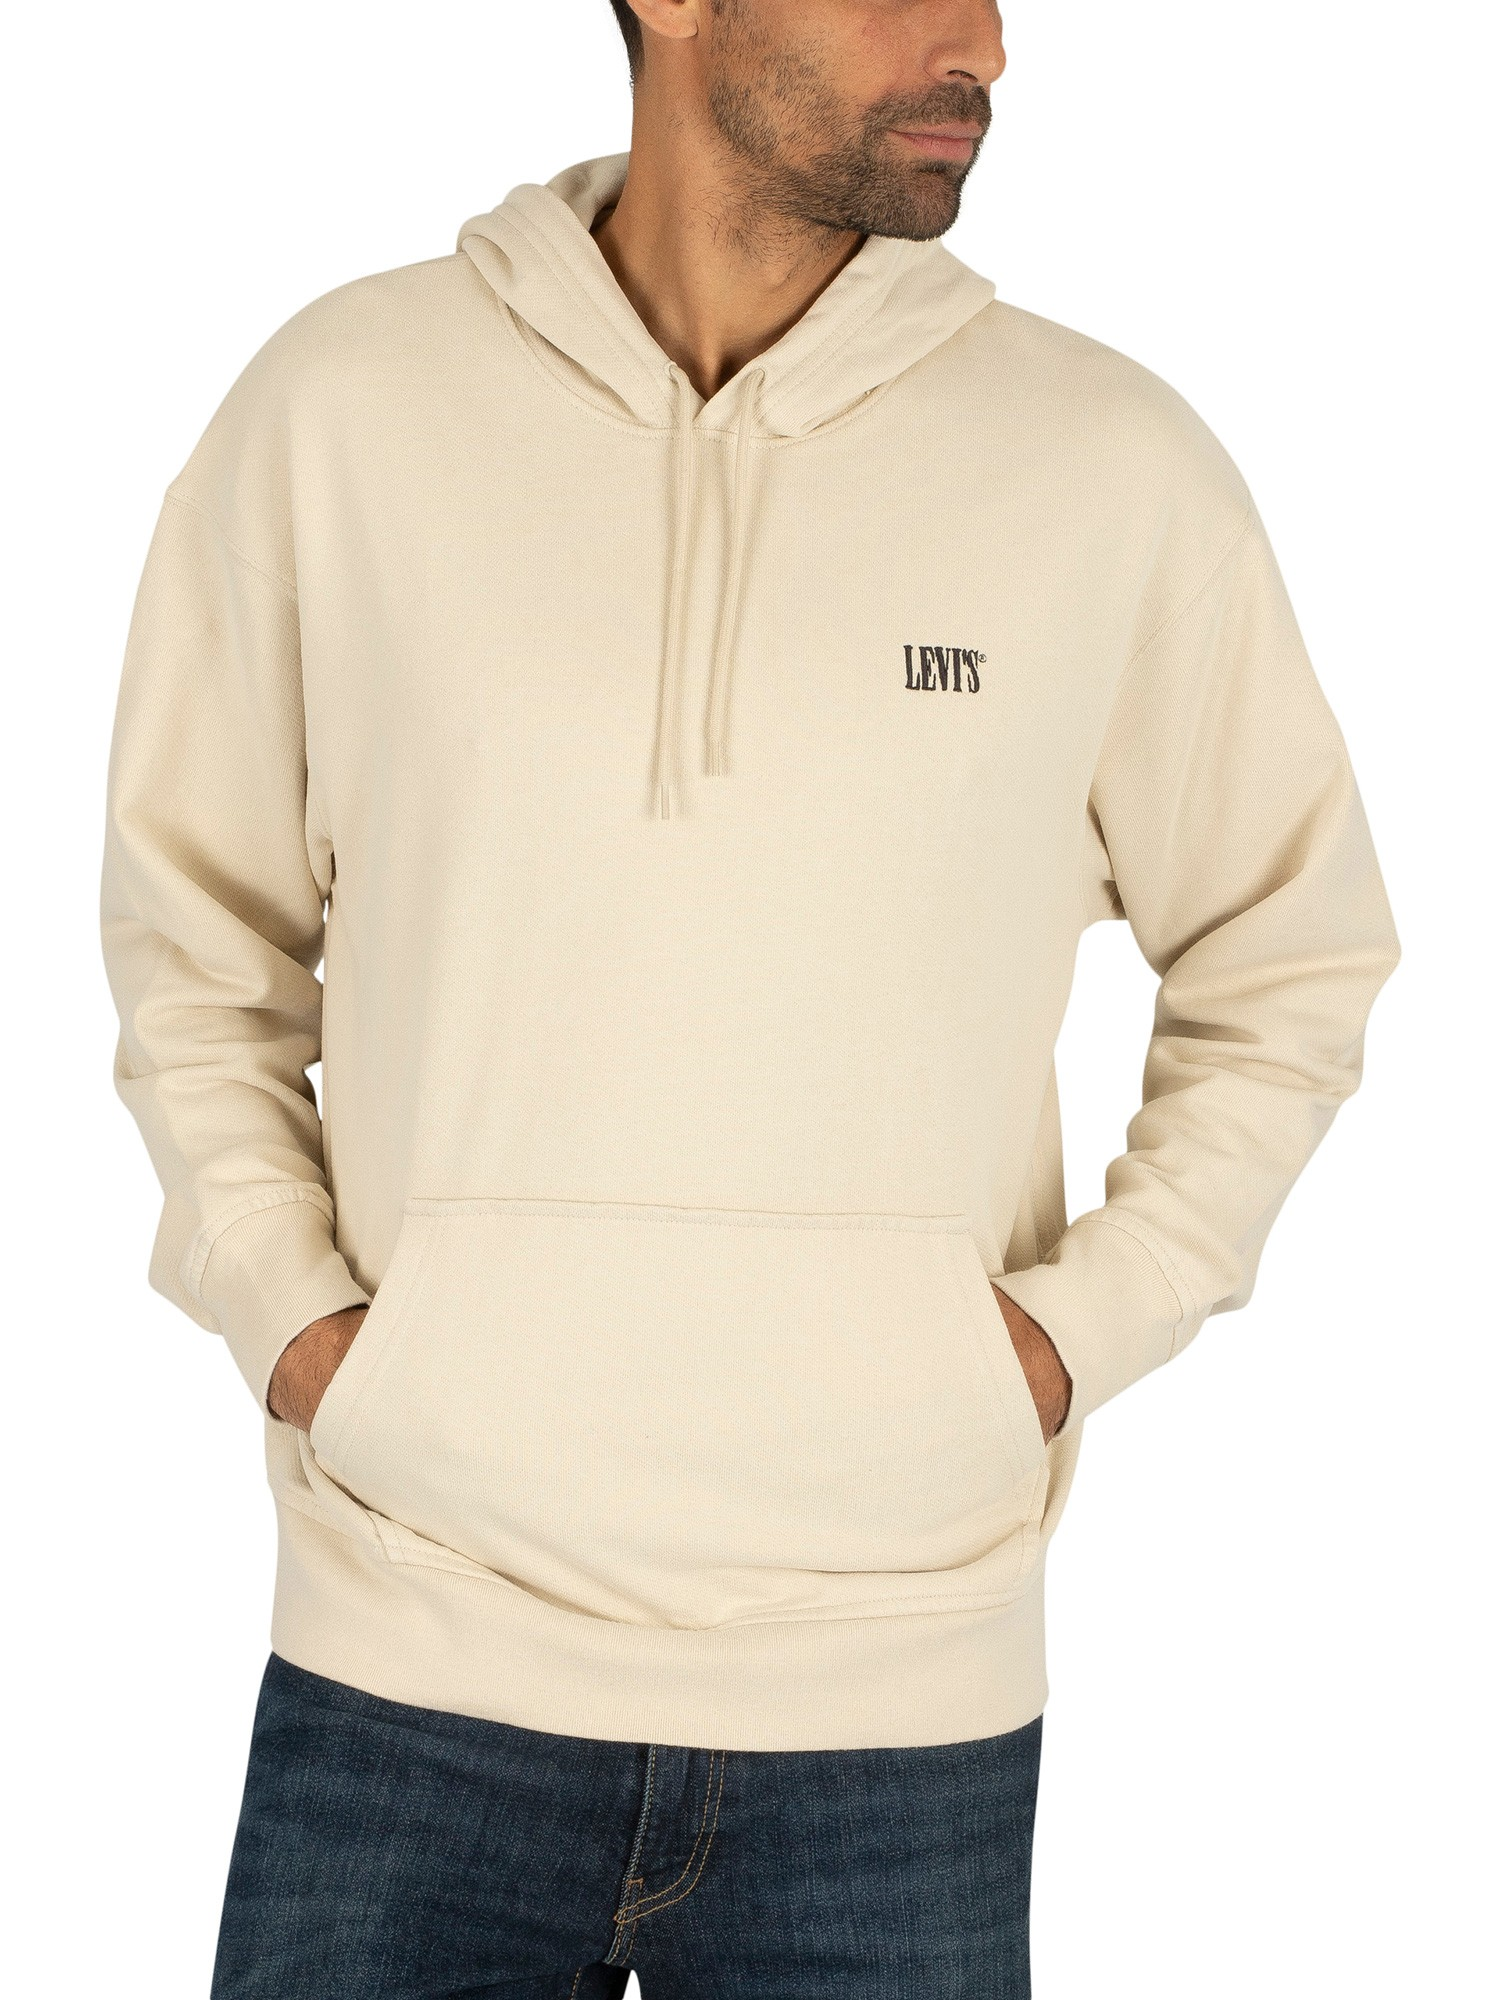 the best san francisco the sale of shoes Levi's Authentic Pullover Hoodie - Beige